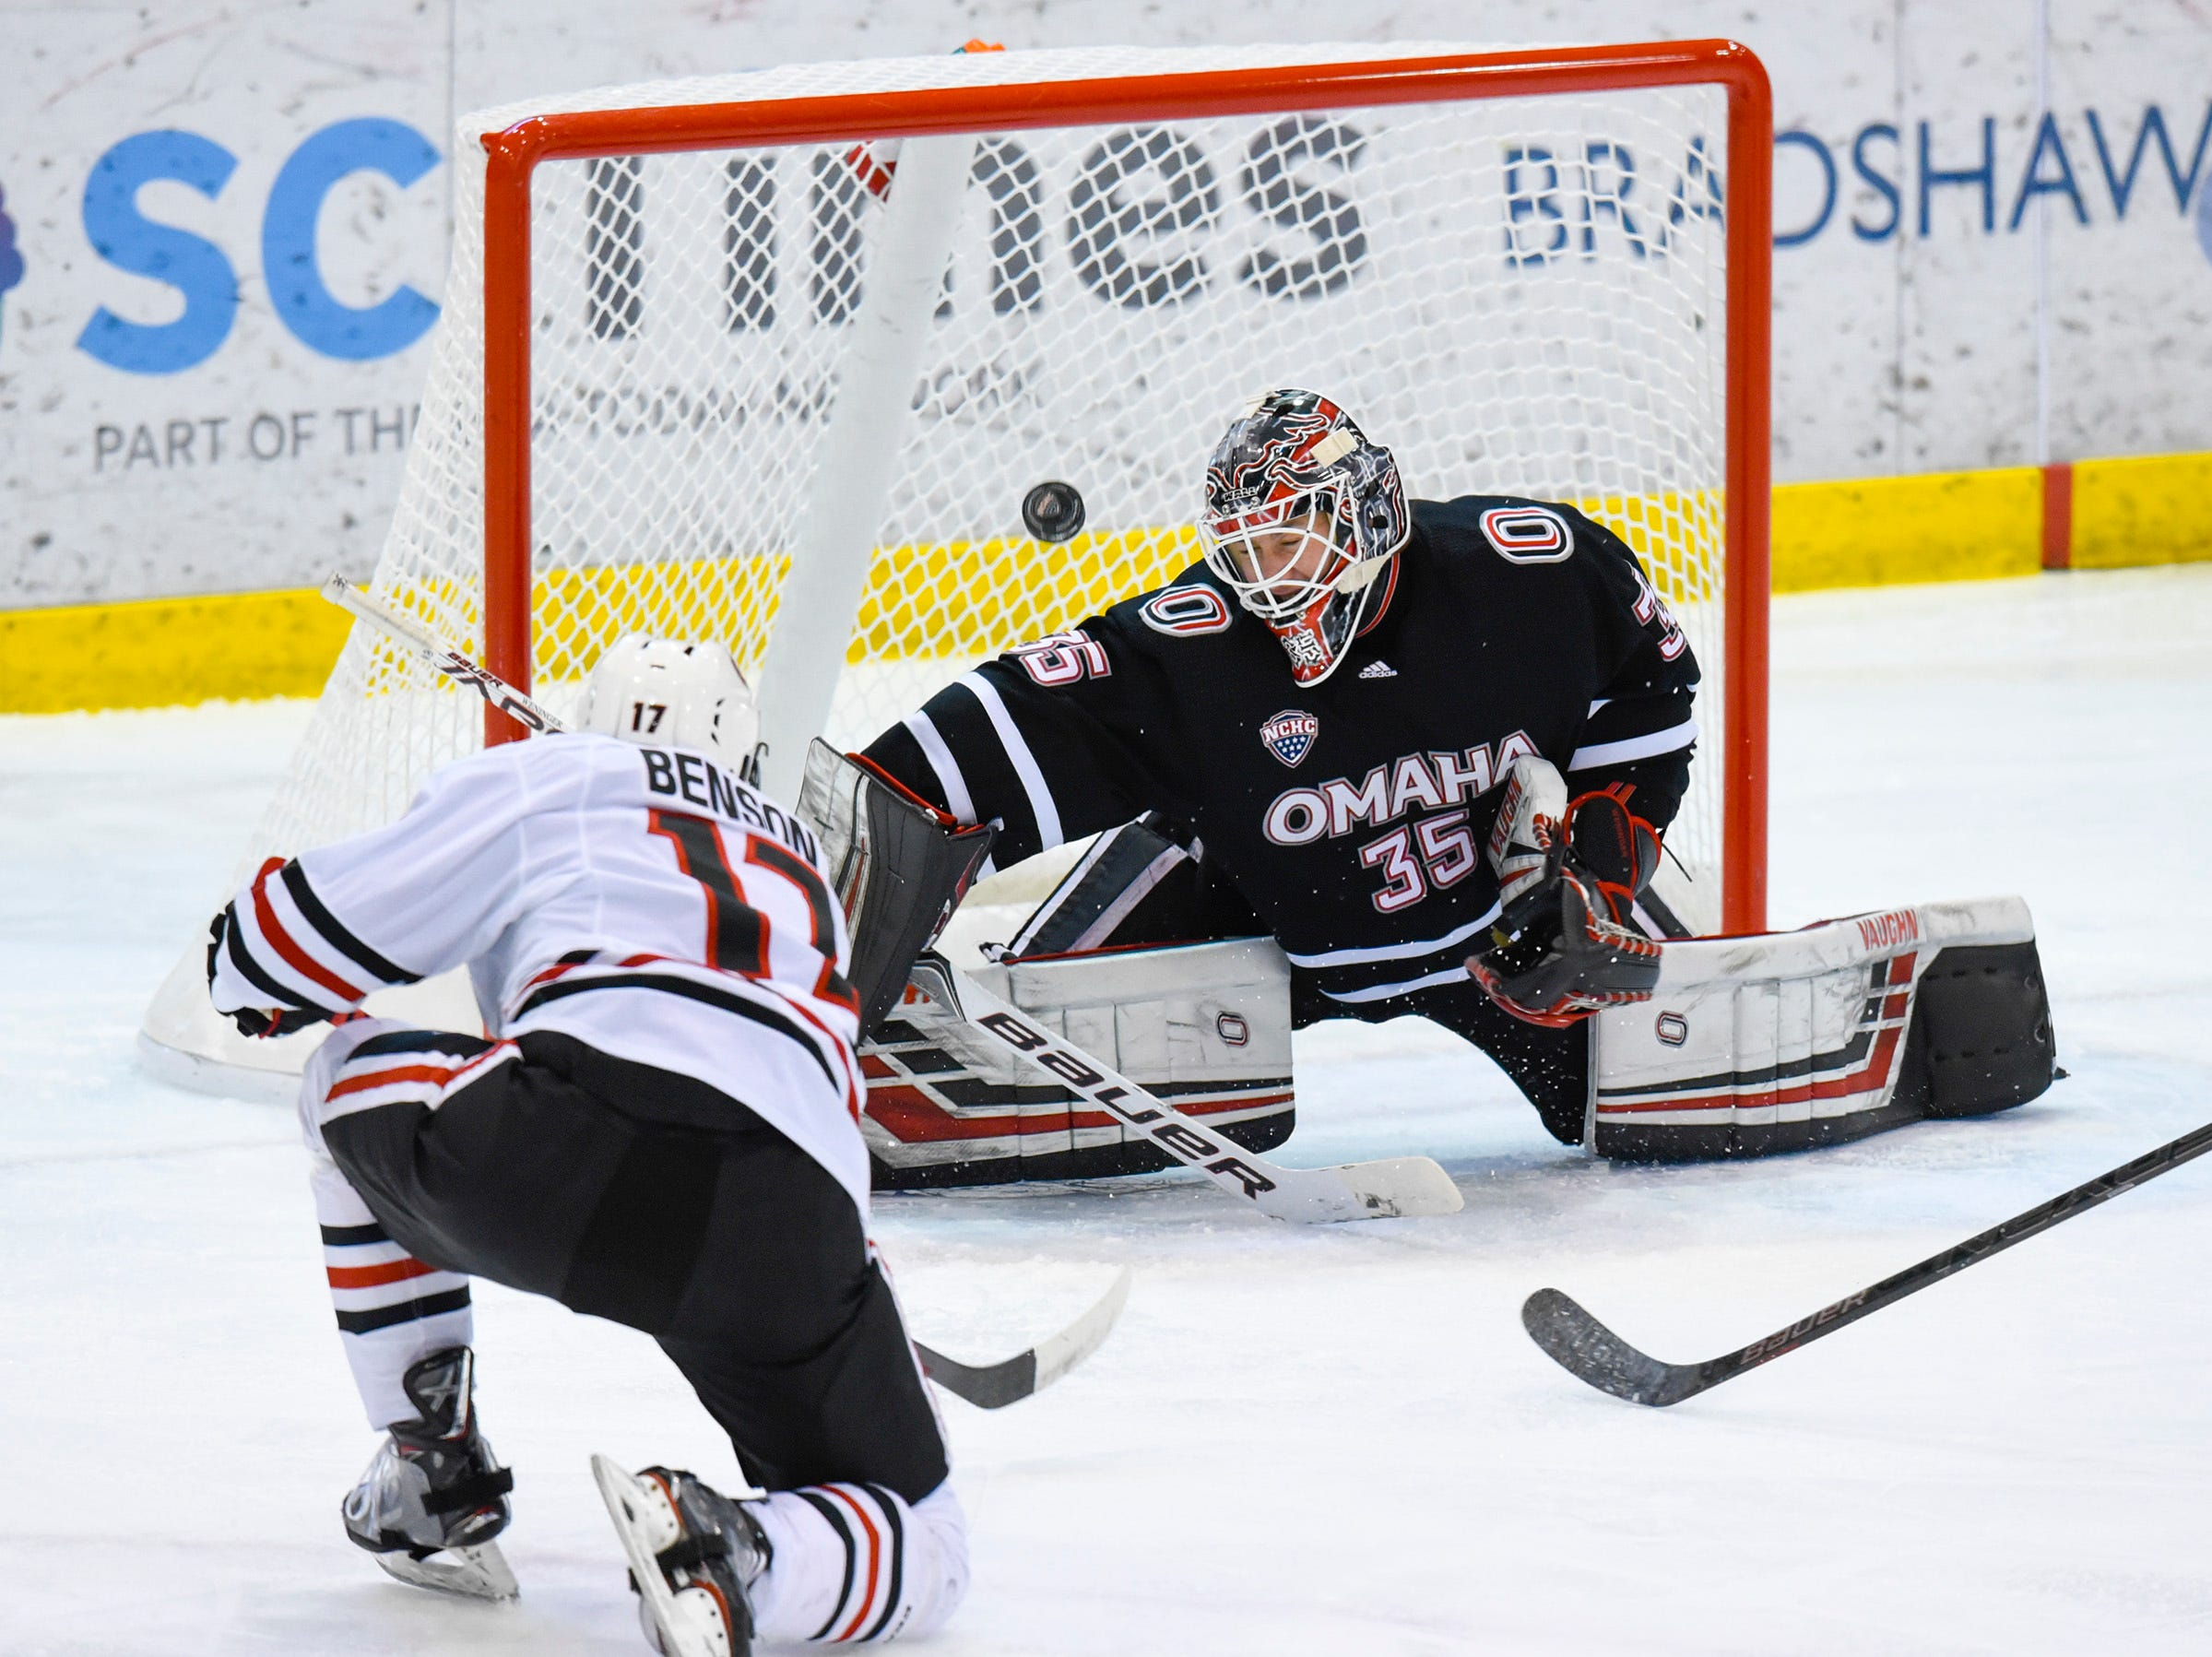 Nebraska-Omaha goalie Evan Weninger blocks a shot by St. Cloud State's Jacob Benson during the first period Saturday, Dec. 8, at the Herb Brooks National Hockey Center.